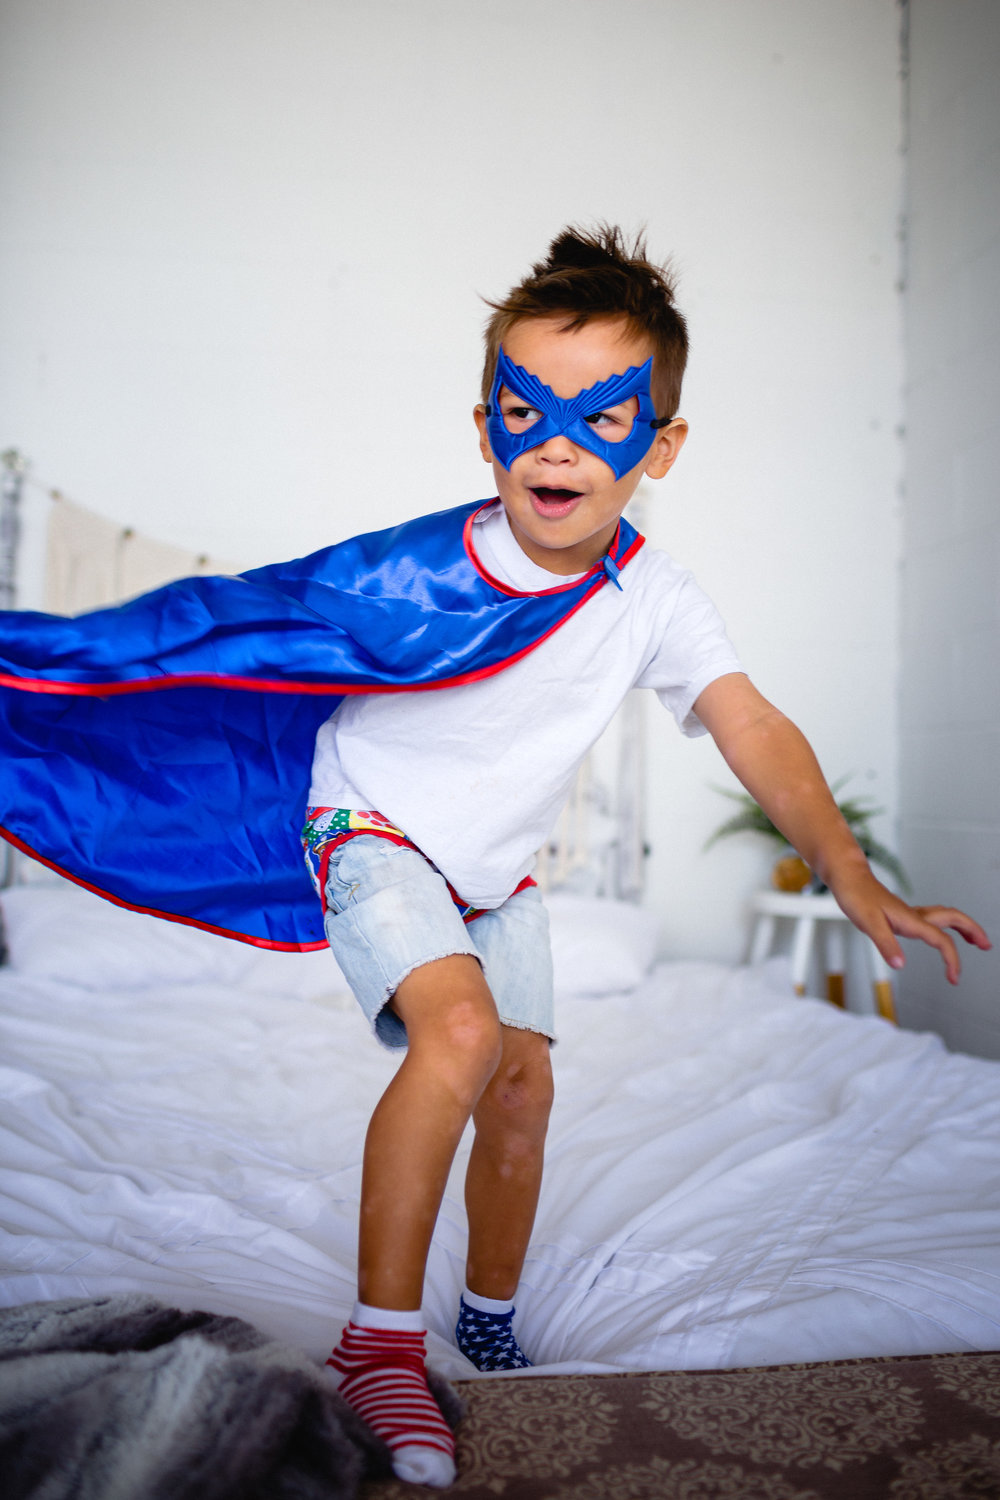 super hero kid jumping on bed lifestyle photographer waynesville